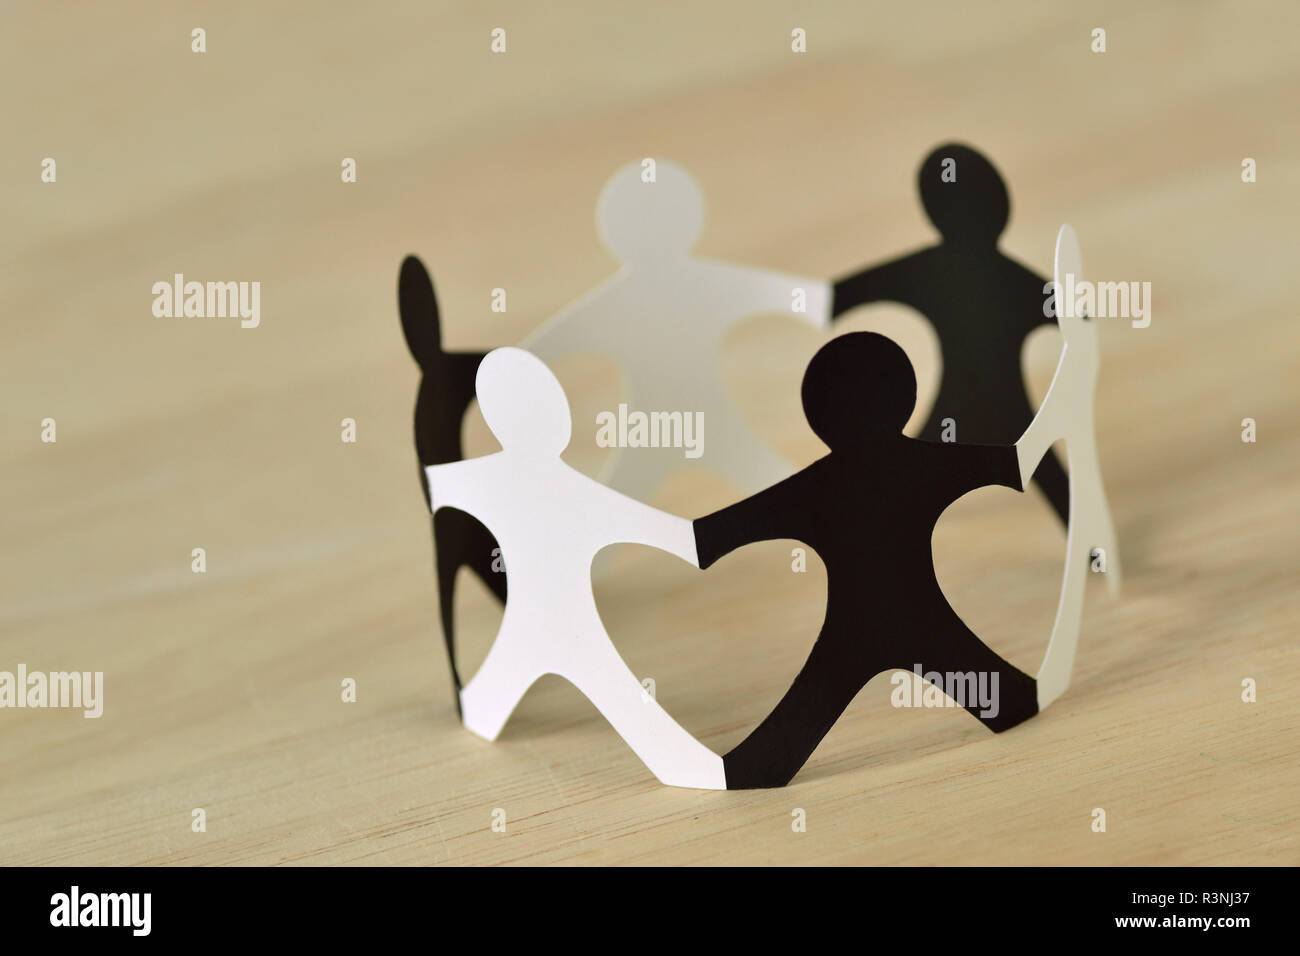 Black and white paper people in a circle holding hands - Anti-racism concept - Stock Image